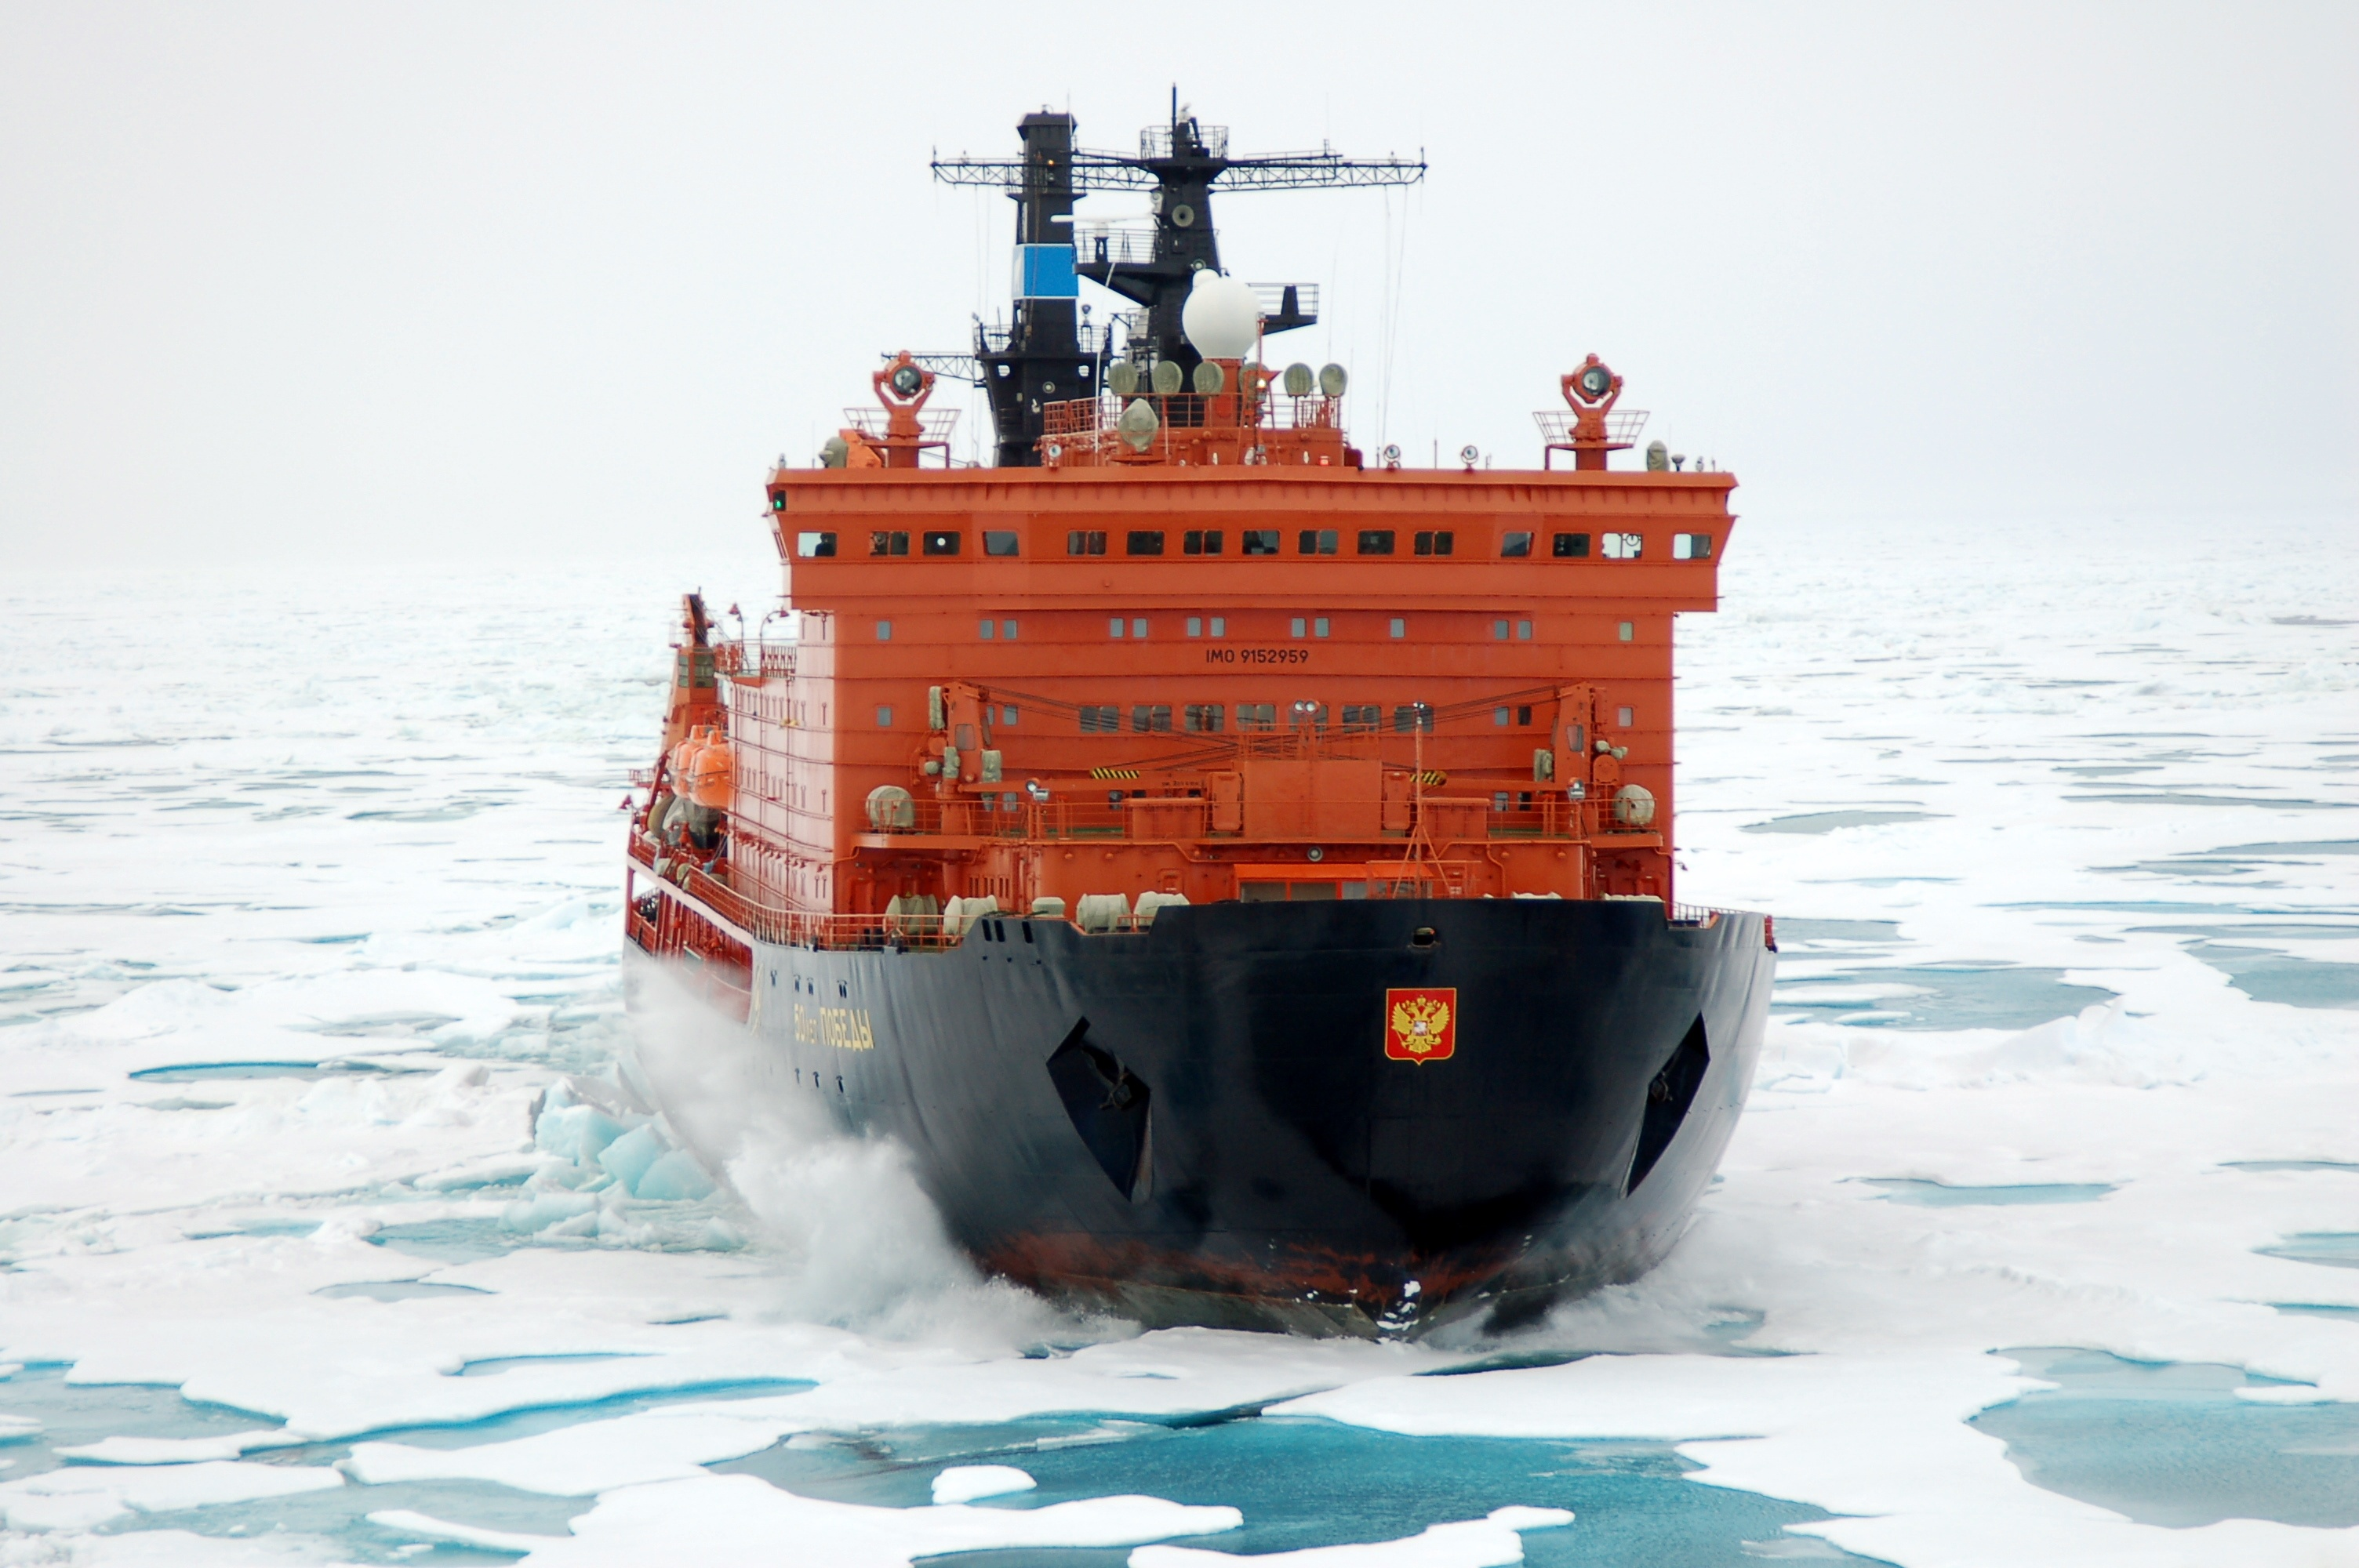 50 Years of Victory powers her way through thick, multi-year sea ice en route to the North Pole.